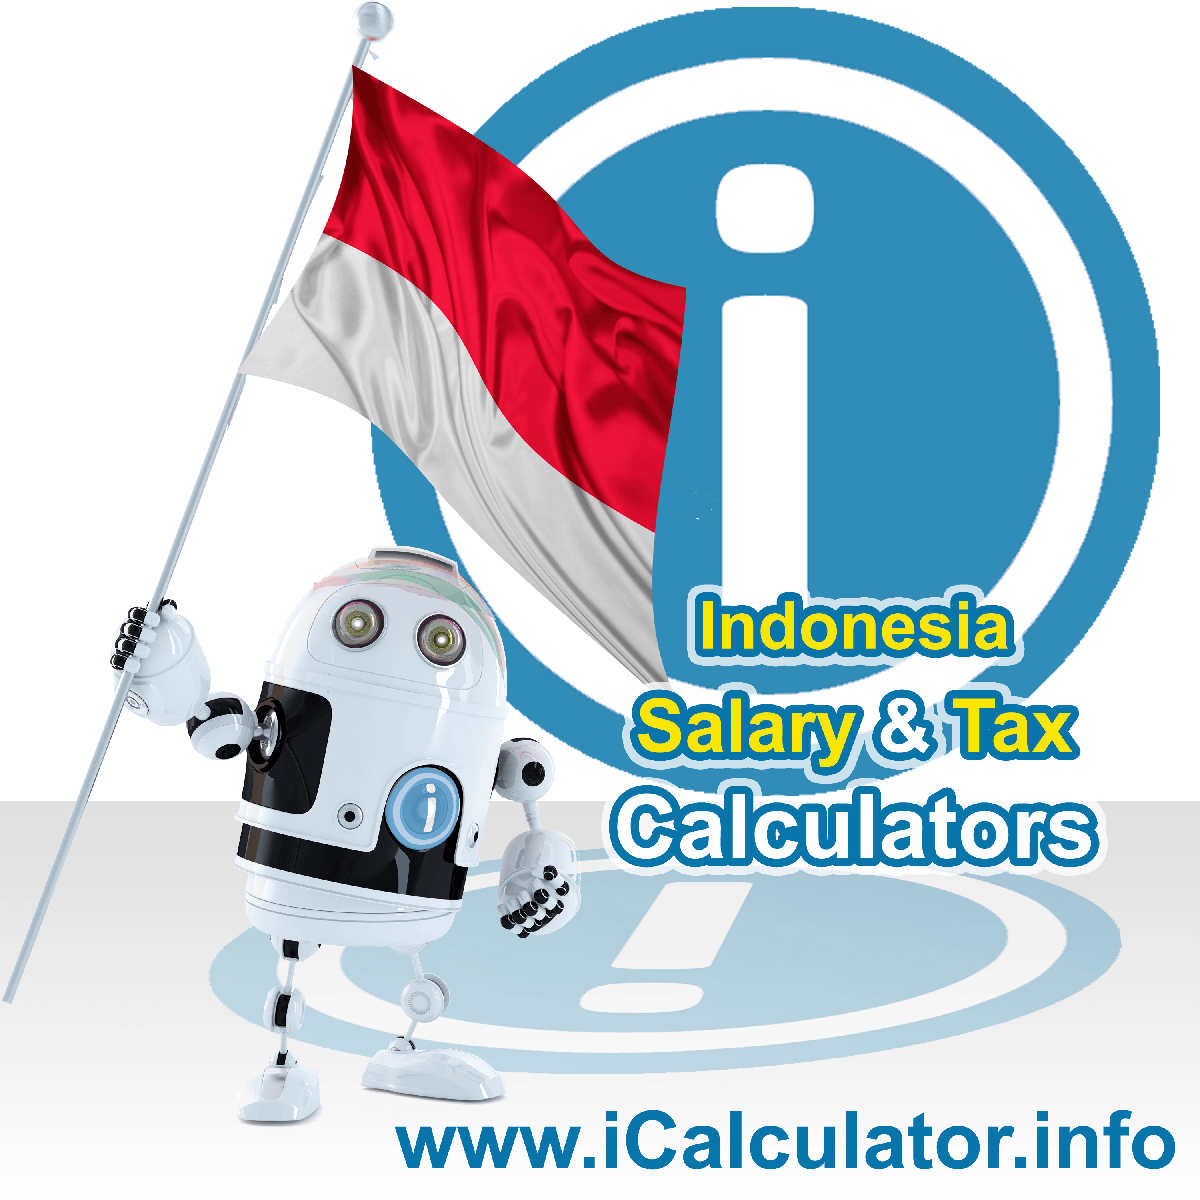 Indonesia Wage Calculator. This image shows the Indonesia flag and information relating to the tax formula for the Indonesia Tax Calculator